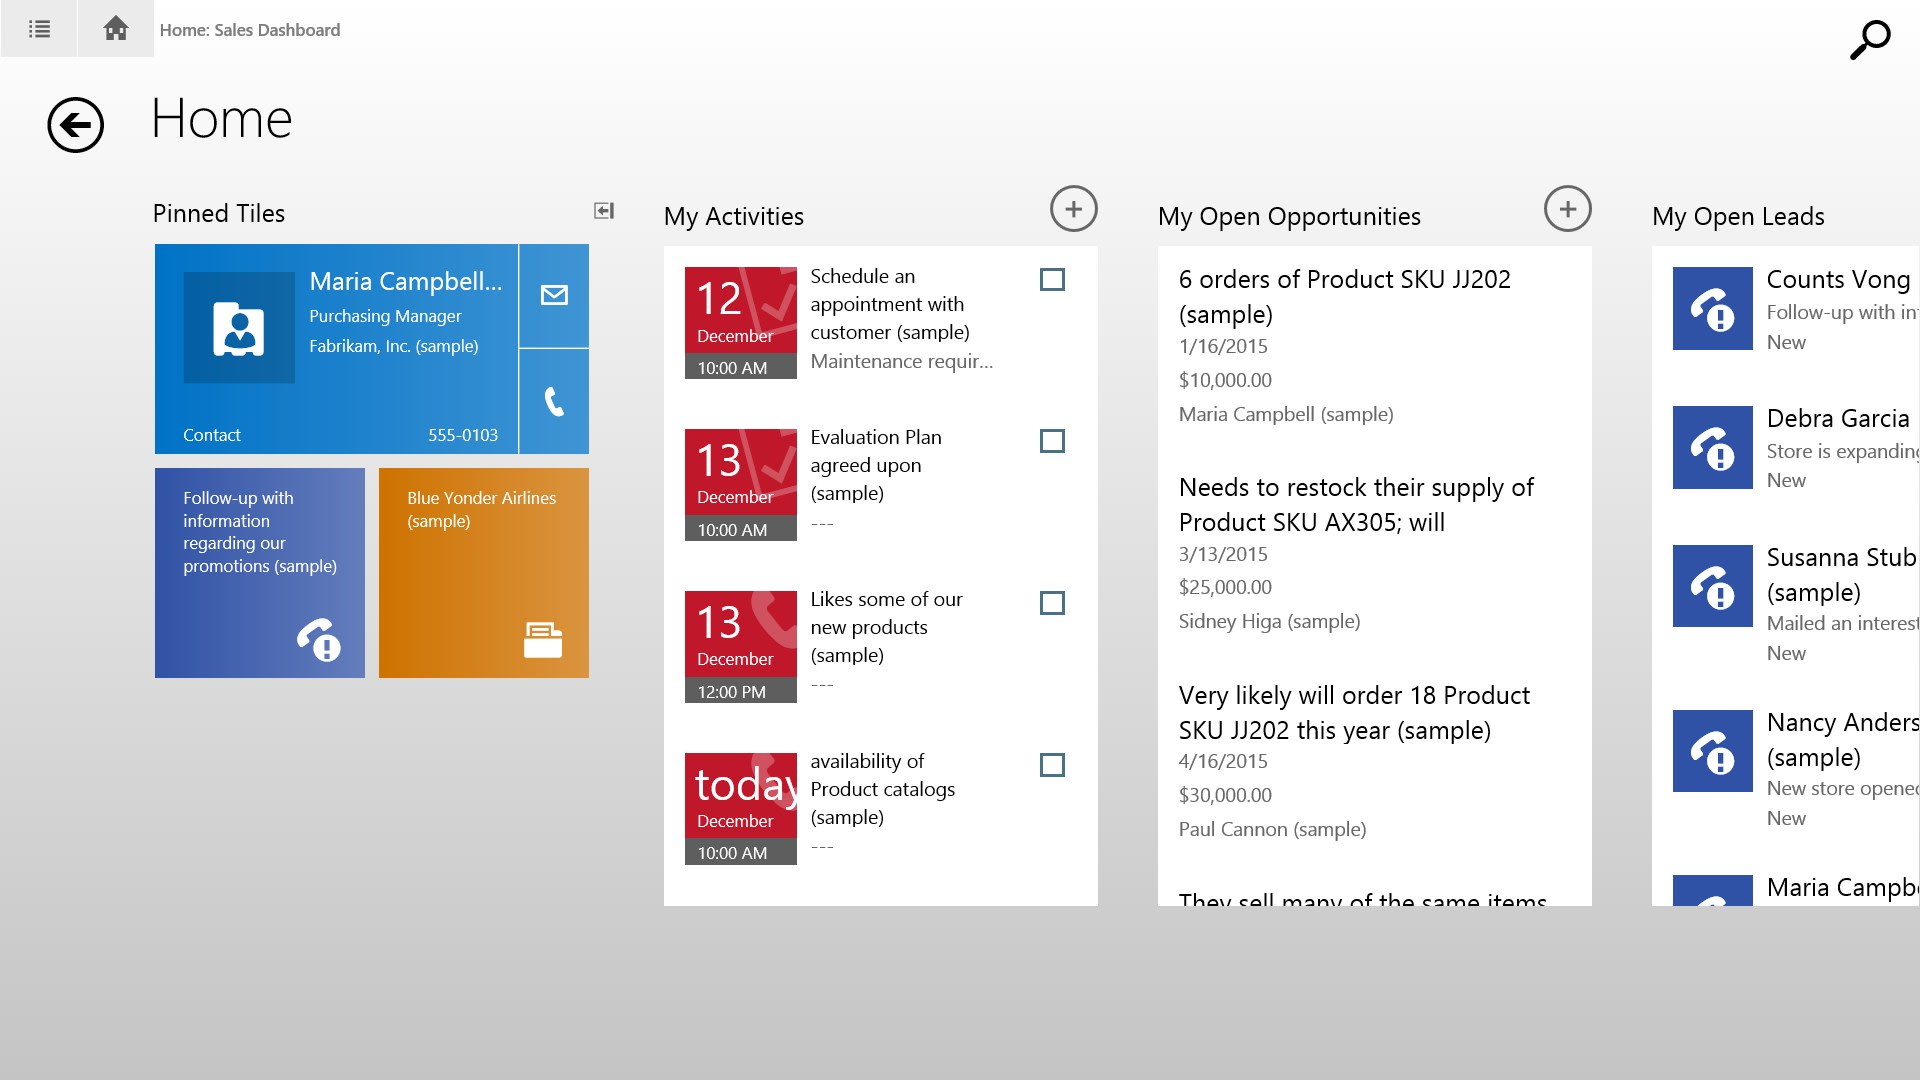 Microsoft Dynamics CRM for Windows 8.1